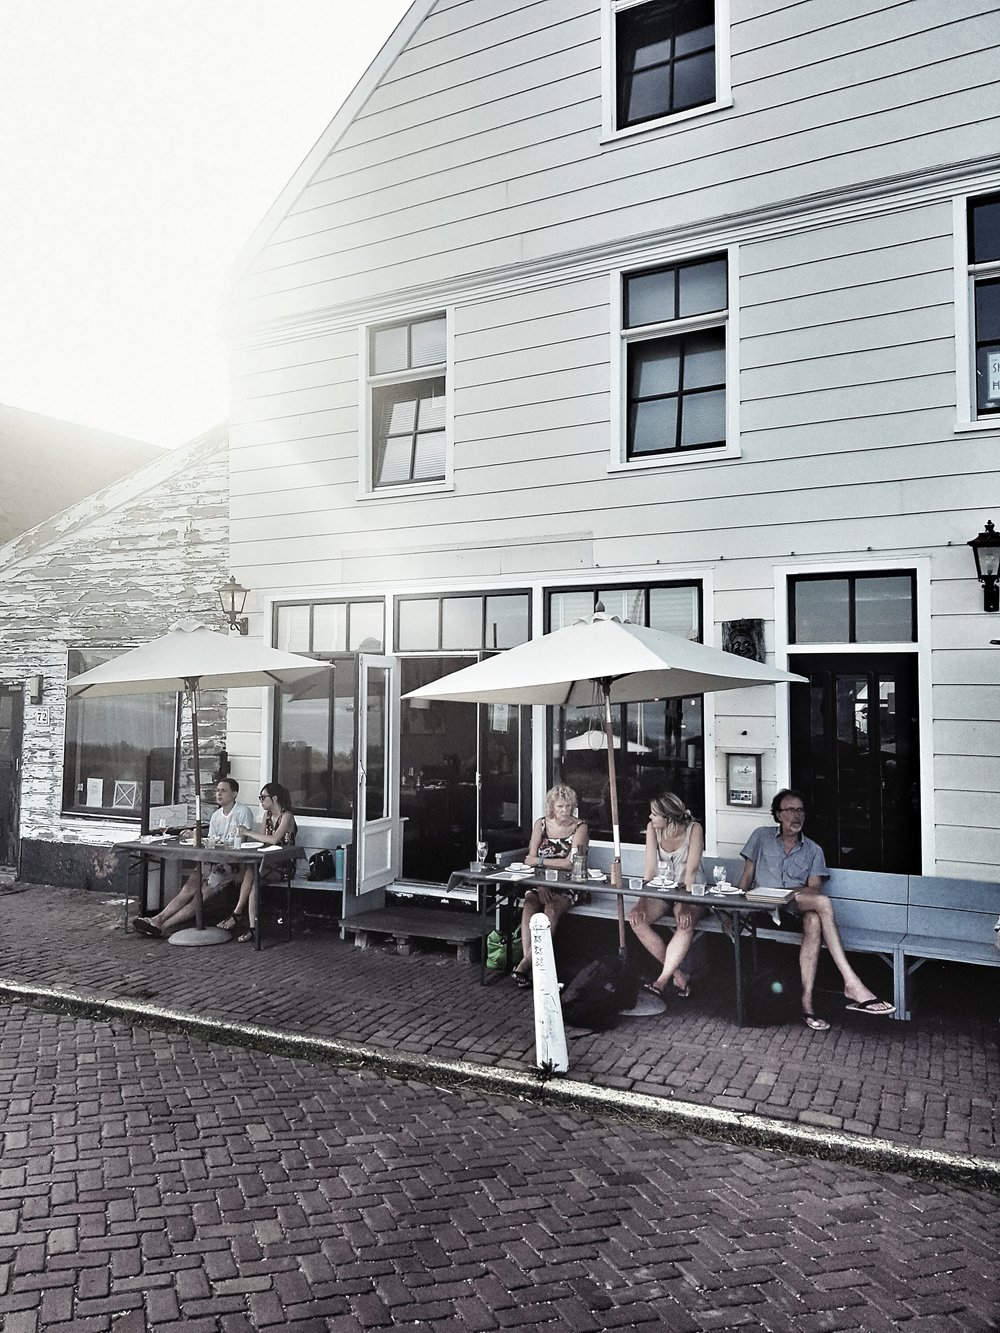 The local bar and restaurant in Durgerdam